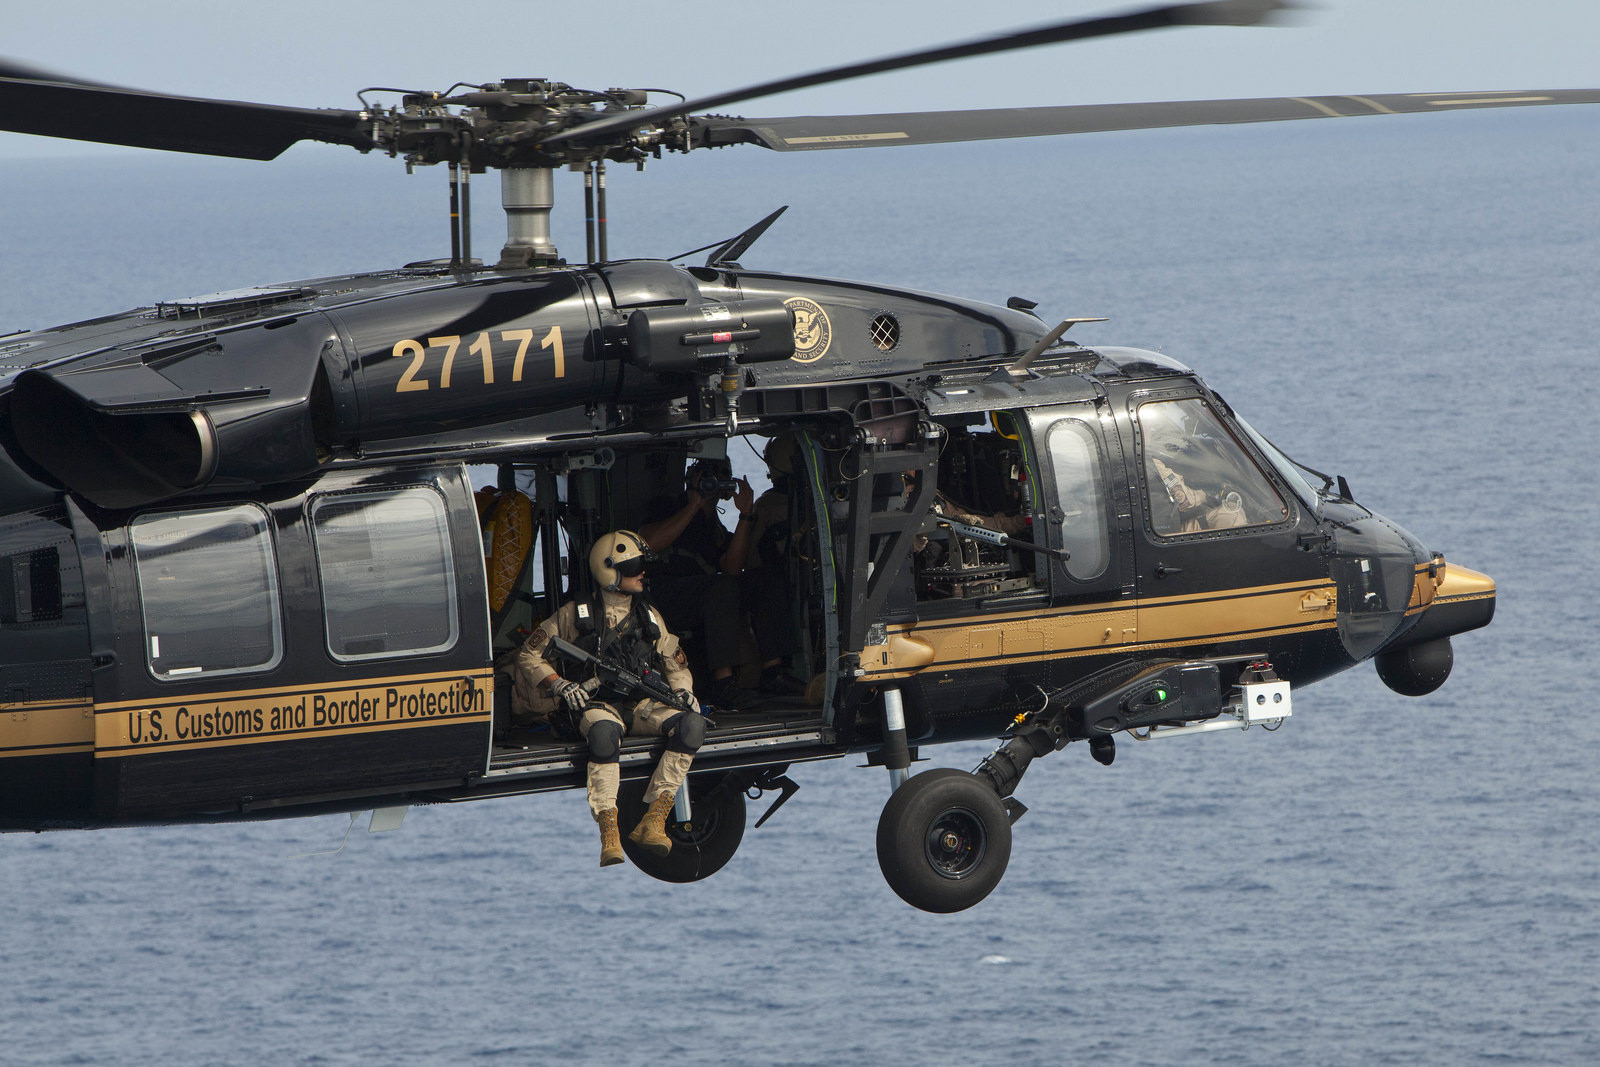 avant helicopters with Ailes Douaniers Gardes Frontieres Americains on Bateau De Police Lego further Sortie Aeroscopia Airbus Du 8 Avril 2016 moreover La Pologne Opte Finalement Pour Des Helicopteres Black Hawk Americains furthermore Chapt 08 also Bombardier Global Express.